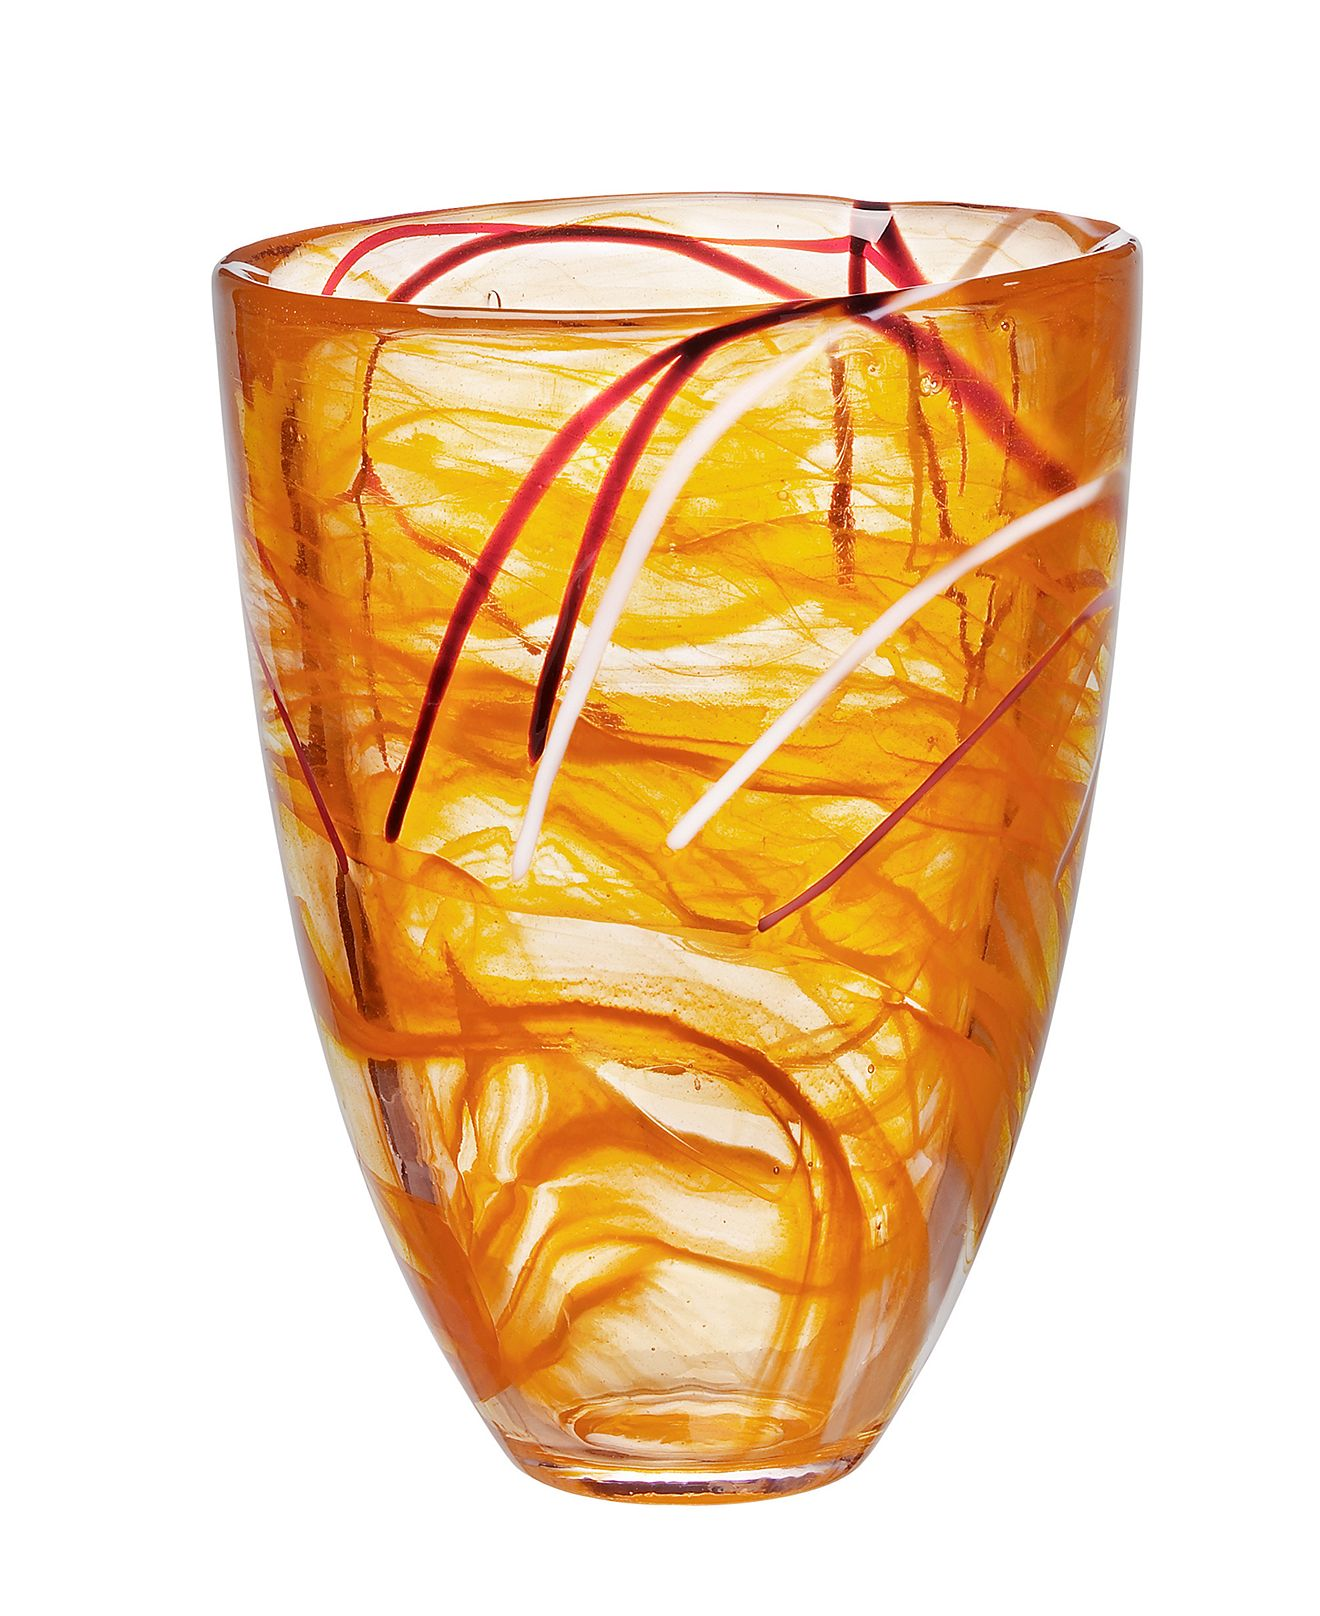 Kosta boda crystal gifts contrast vase 8 bowls vases for kosta boda crystal gifts contrast vase 8 bowls vases for the reviewsmspy